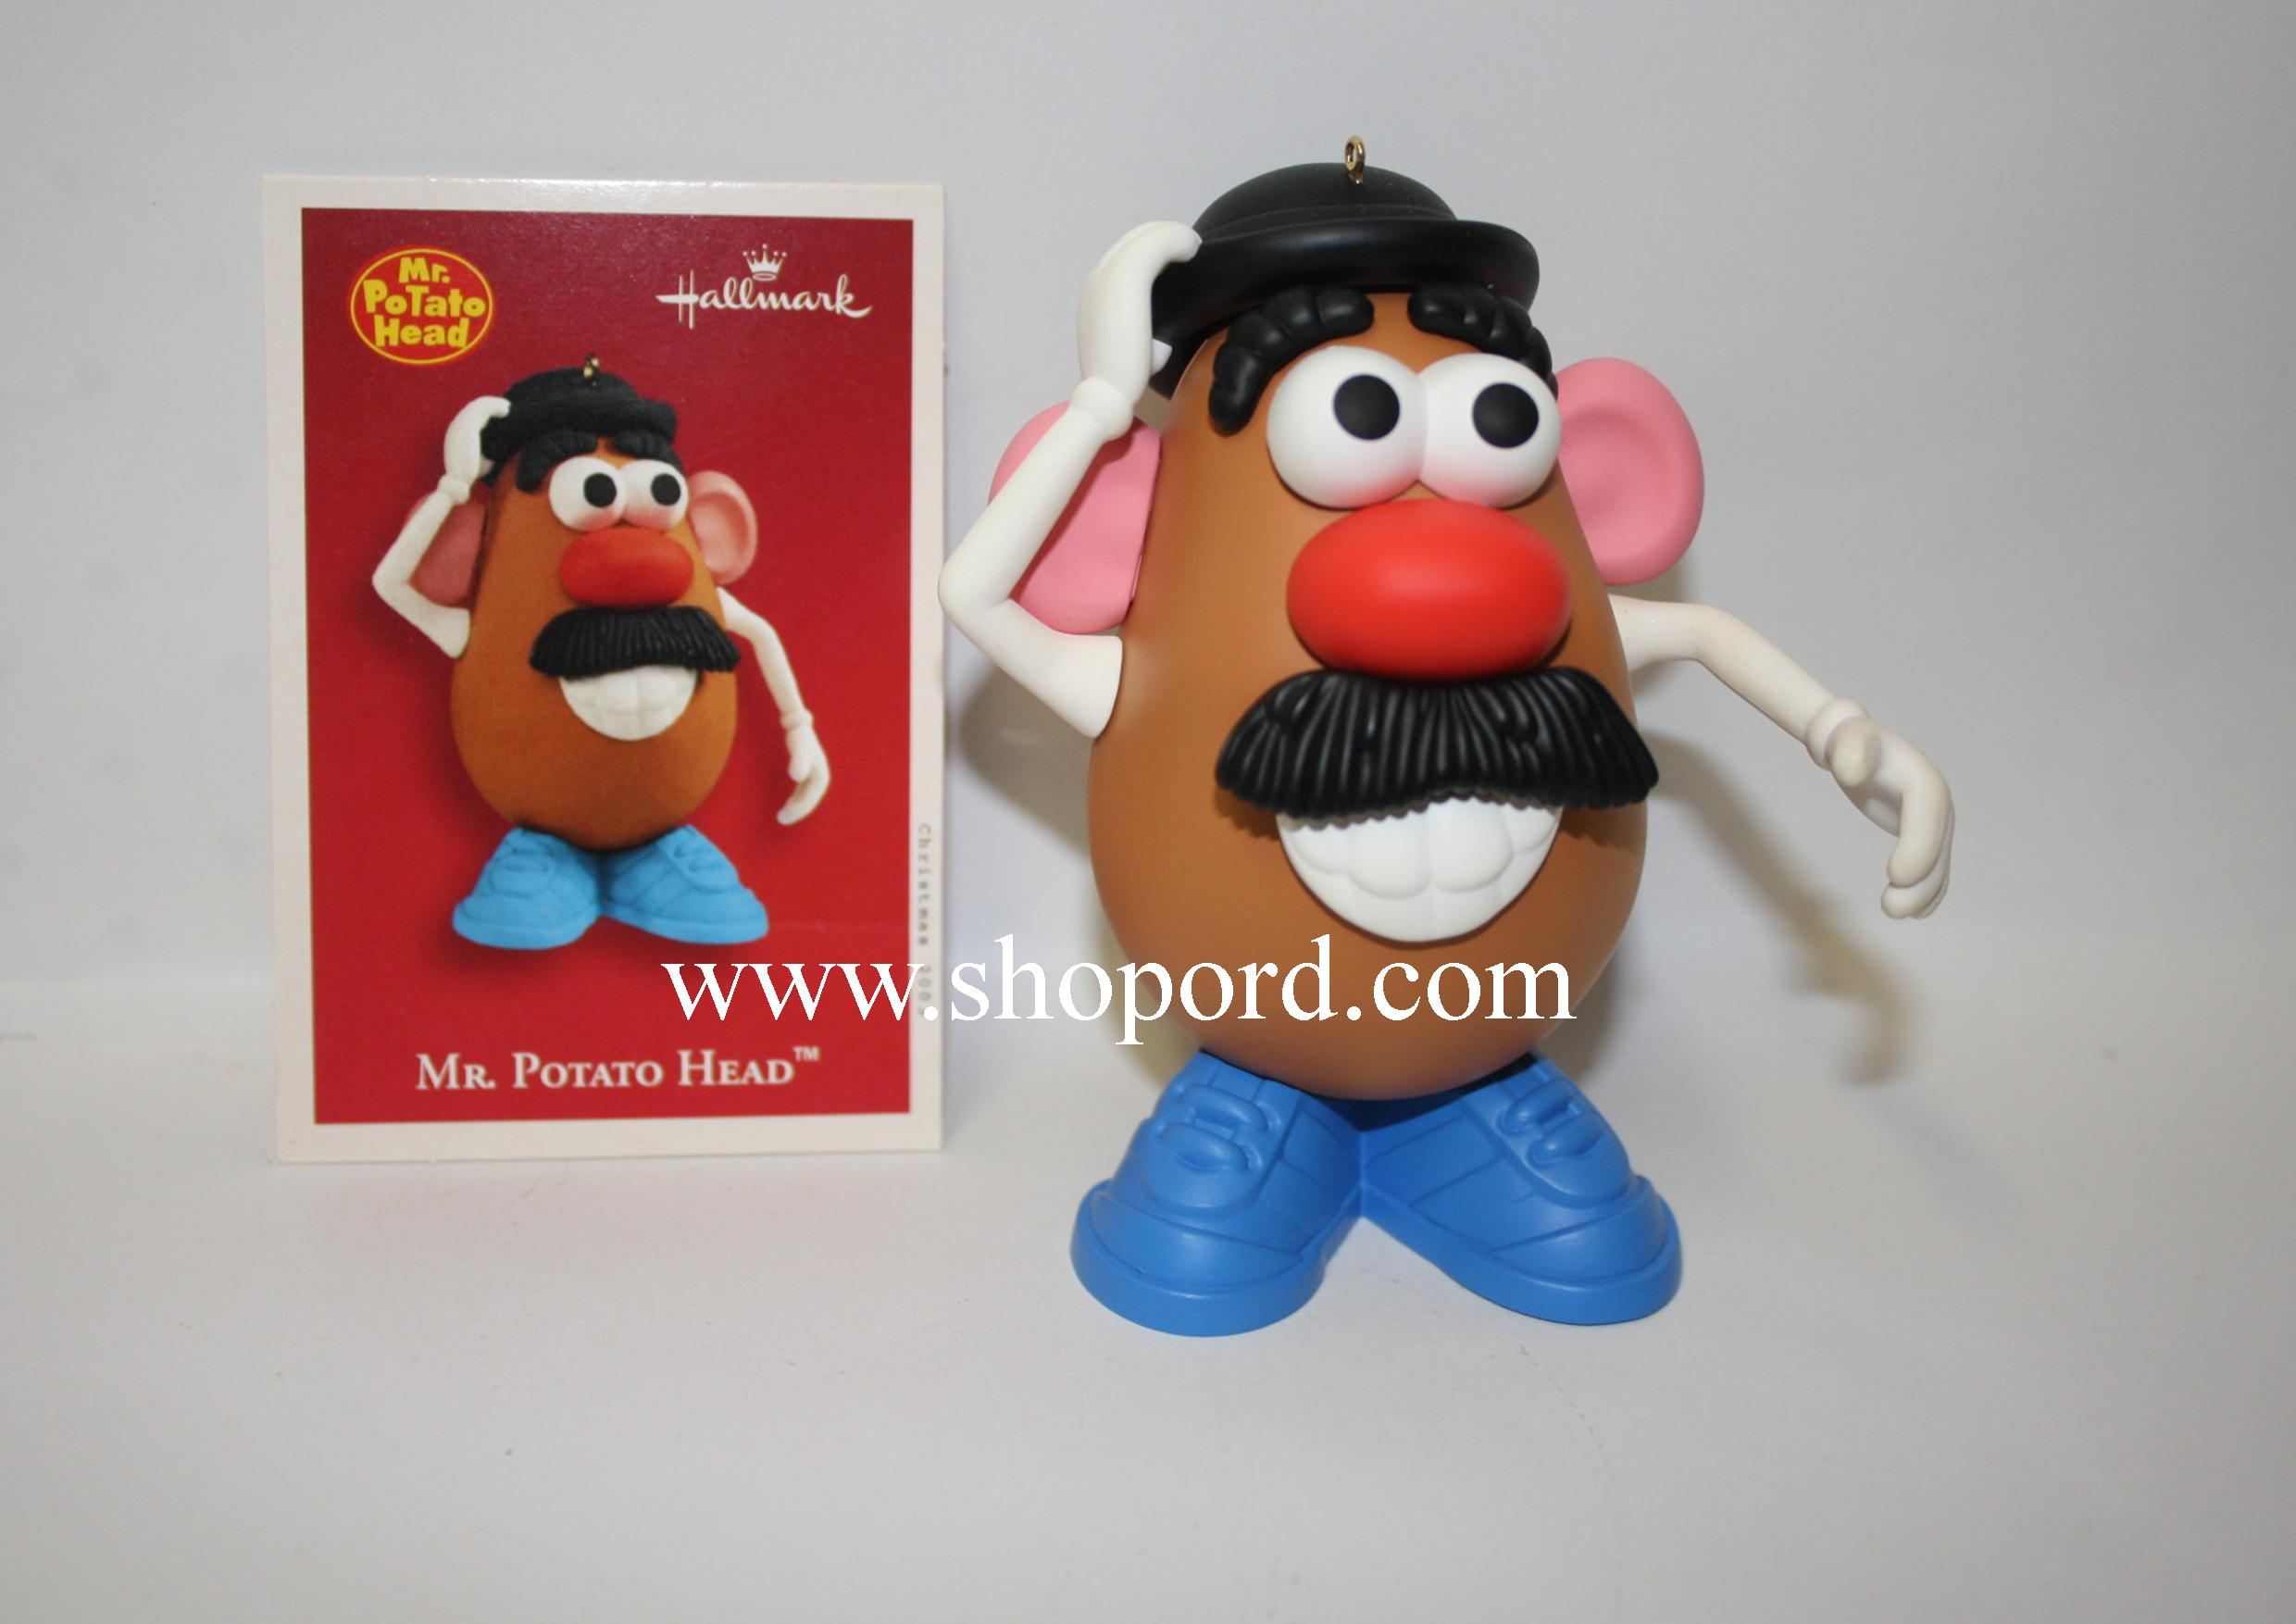 Hallmark 2003 Mr Potato Head Ornament QXI4277 Damaged Box